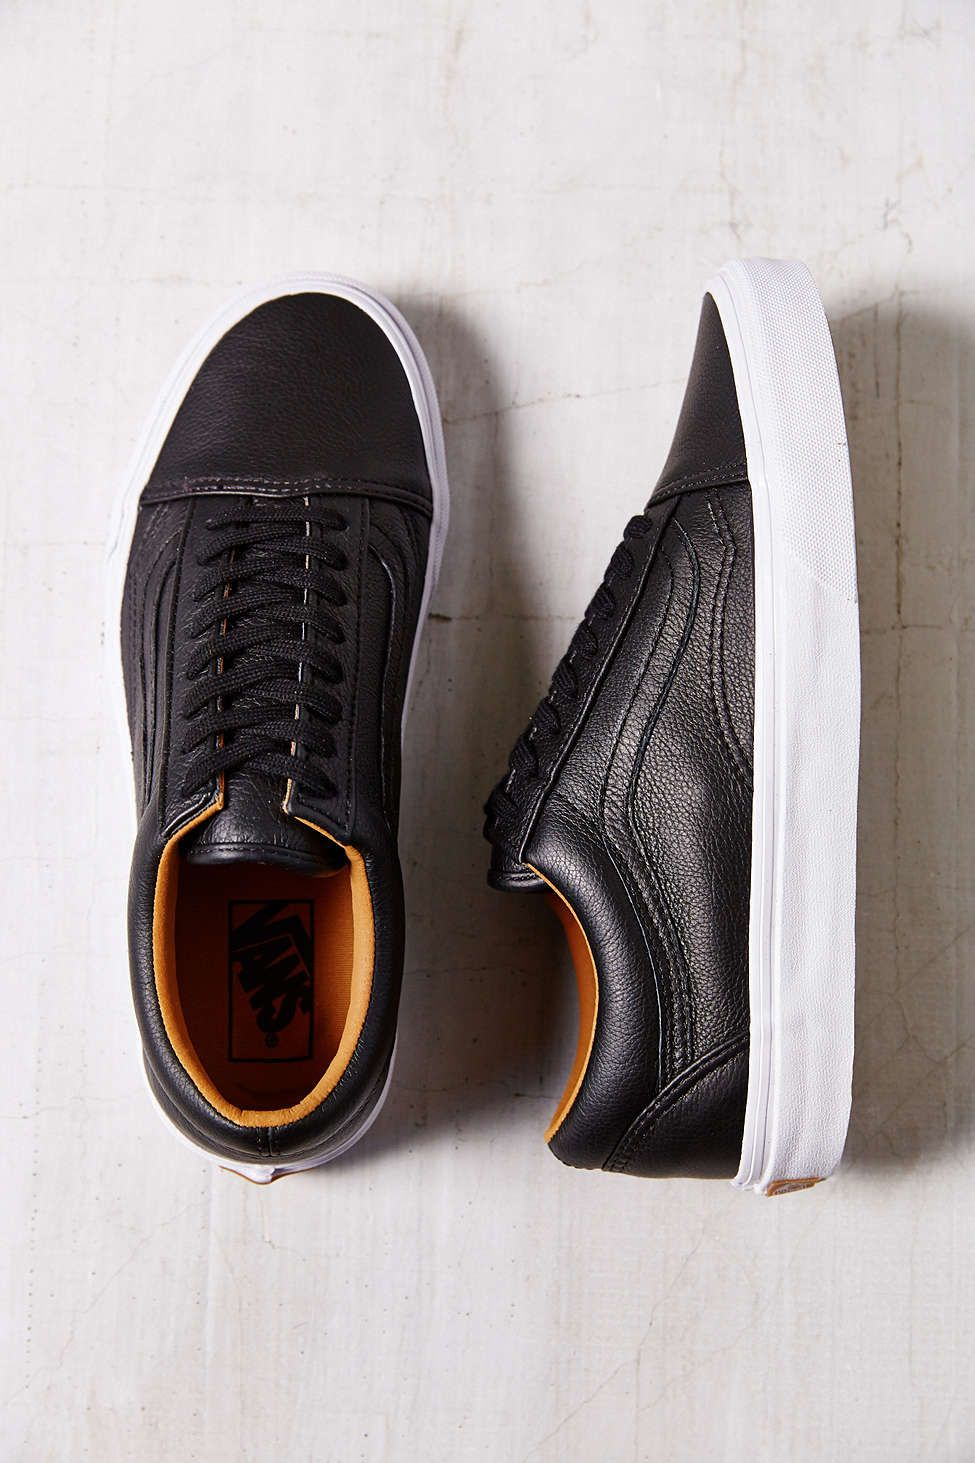 Vans Old Skool Premium Leather Low Top Women S Sneaker Top Sneakers Women Trendy Womens Sneakers Black Leather Sneakers